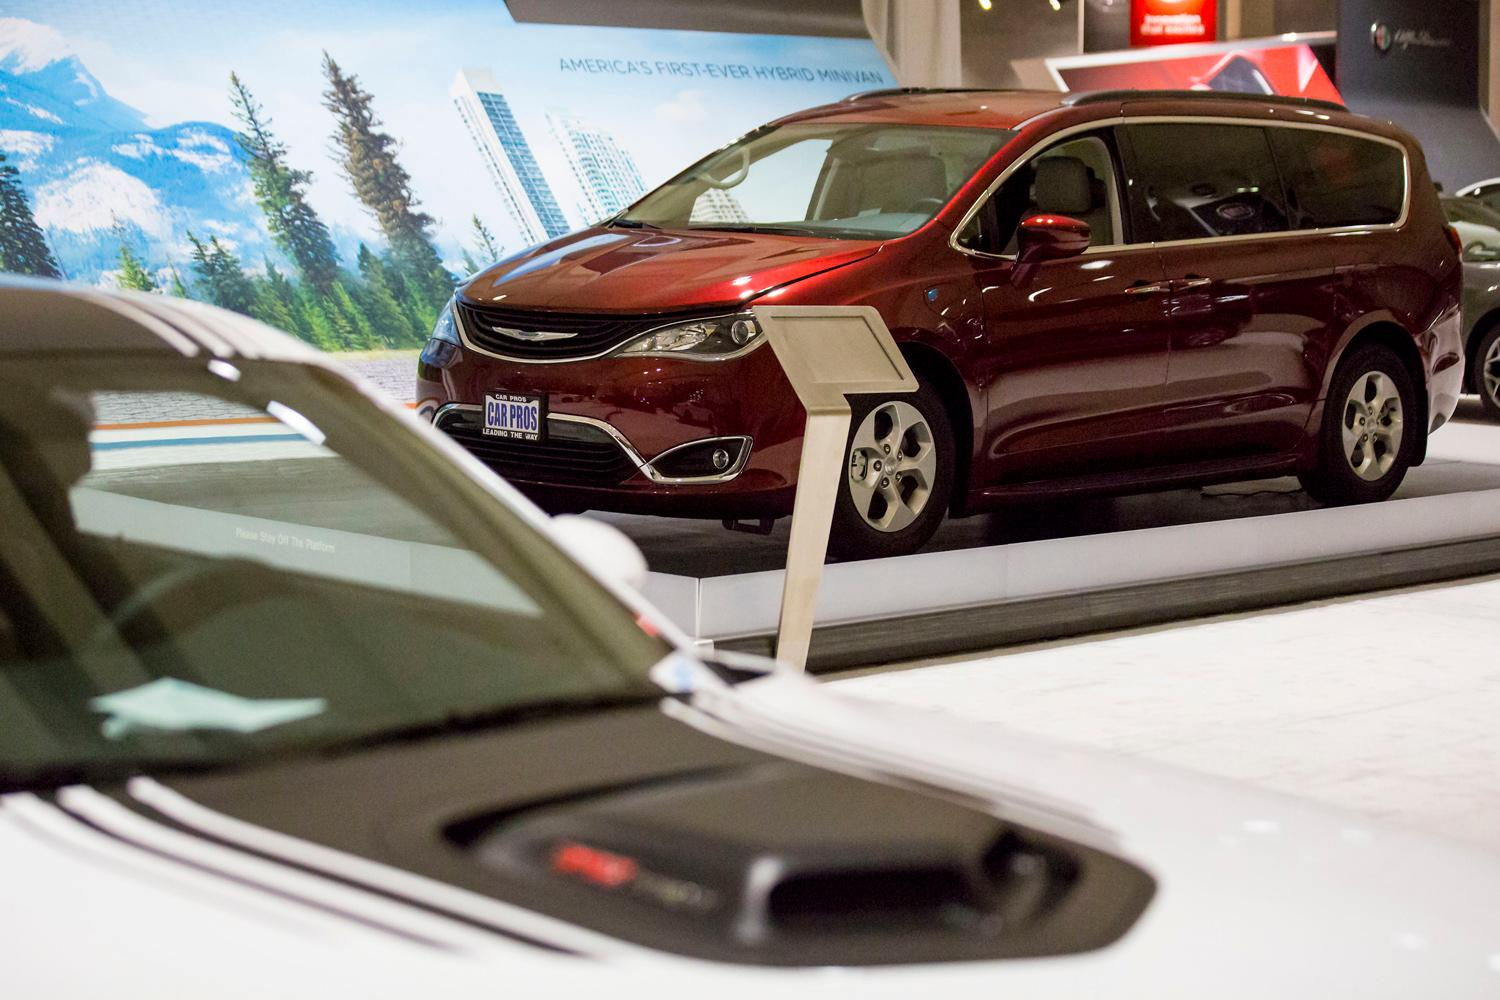 The Chrystler Pacifica Hybrid, the world's first electrified minivan, at the Seattle International Auto Show at the CenturyLink Event Center. (Sy Bean / Seattle Refined)